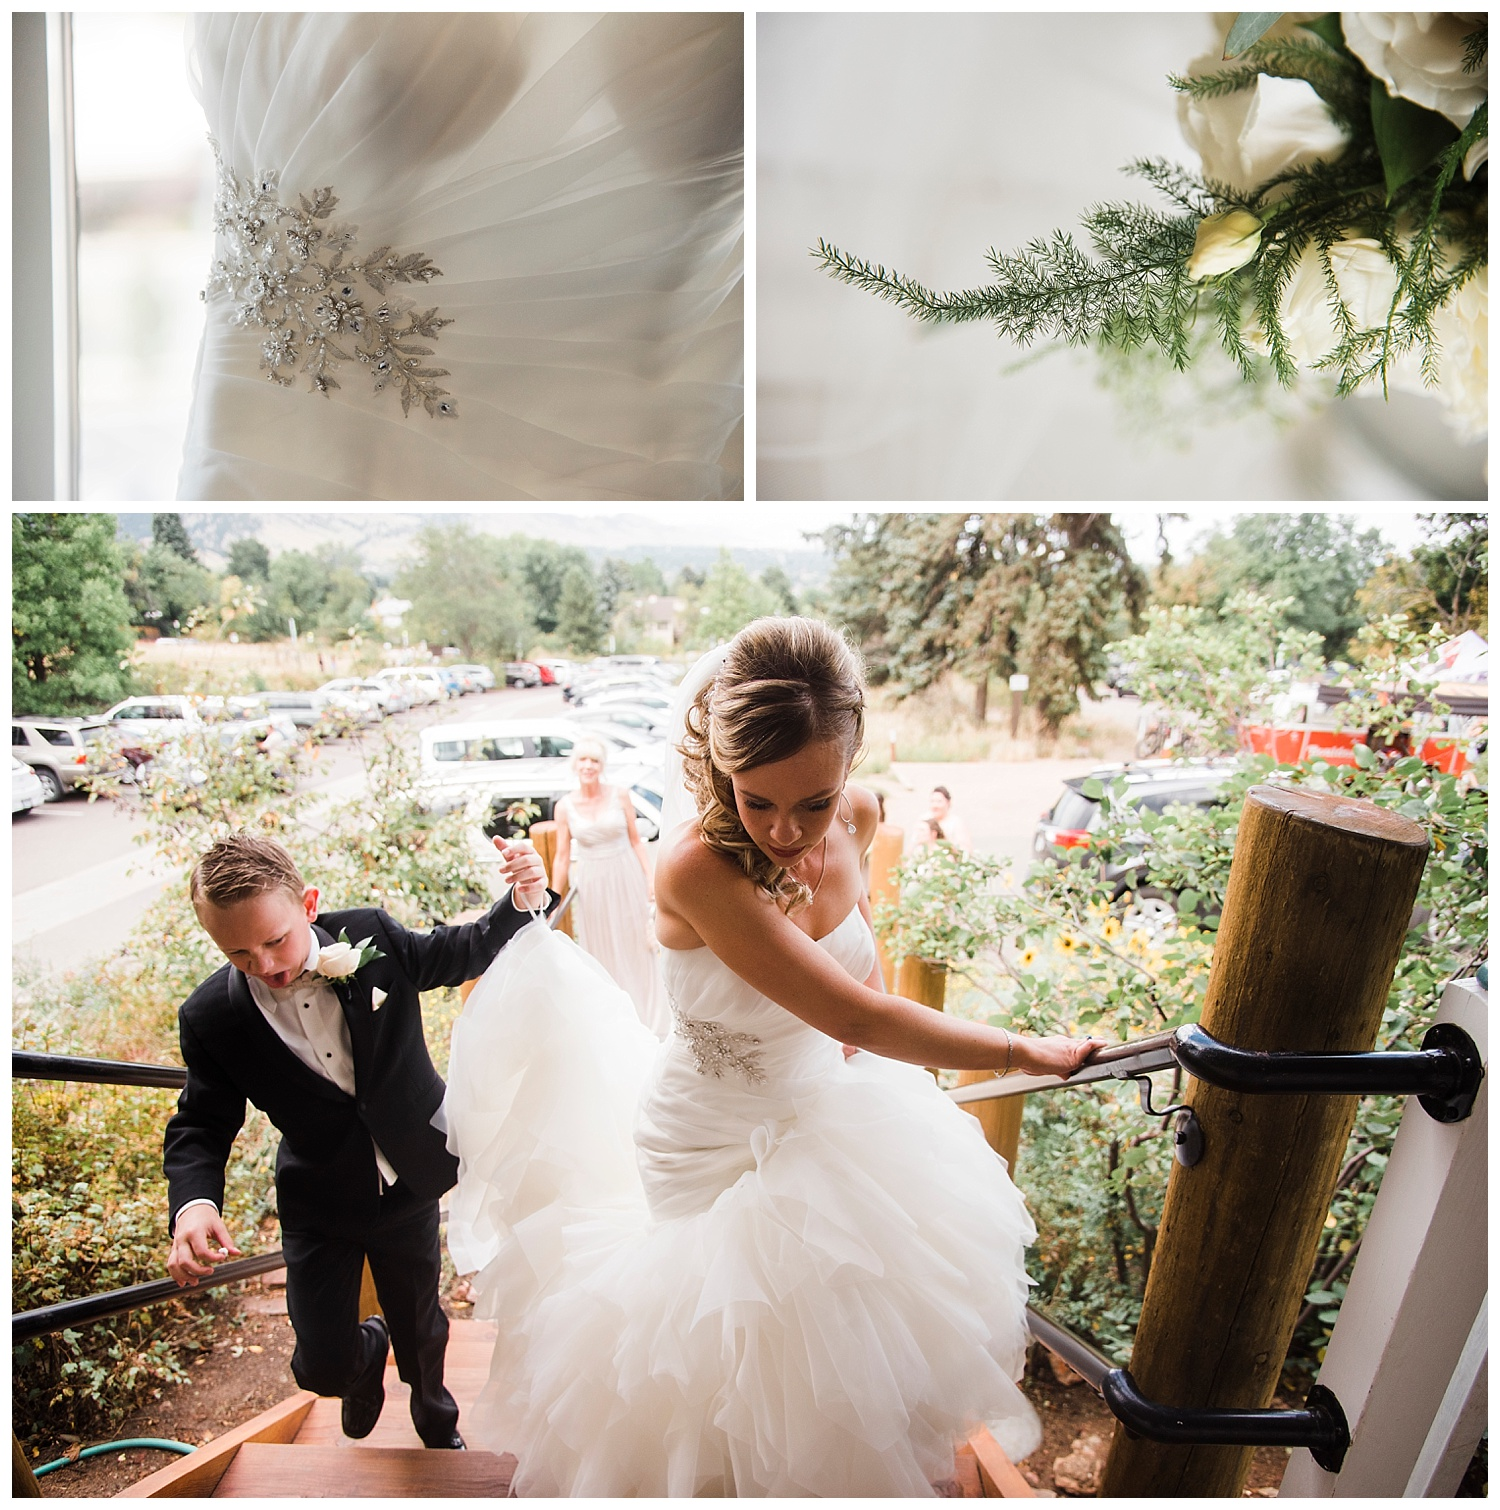 Wedgewood_Boulder_Creek_Wedding_Venue_Colorado_Photographer_Apollo_Fields_002.jpg